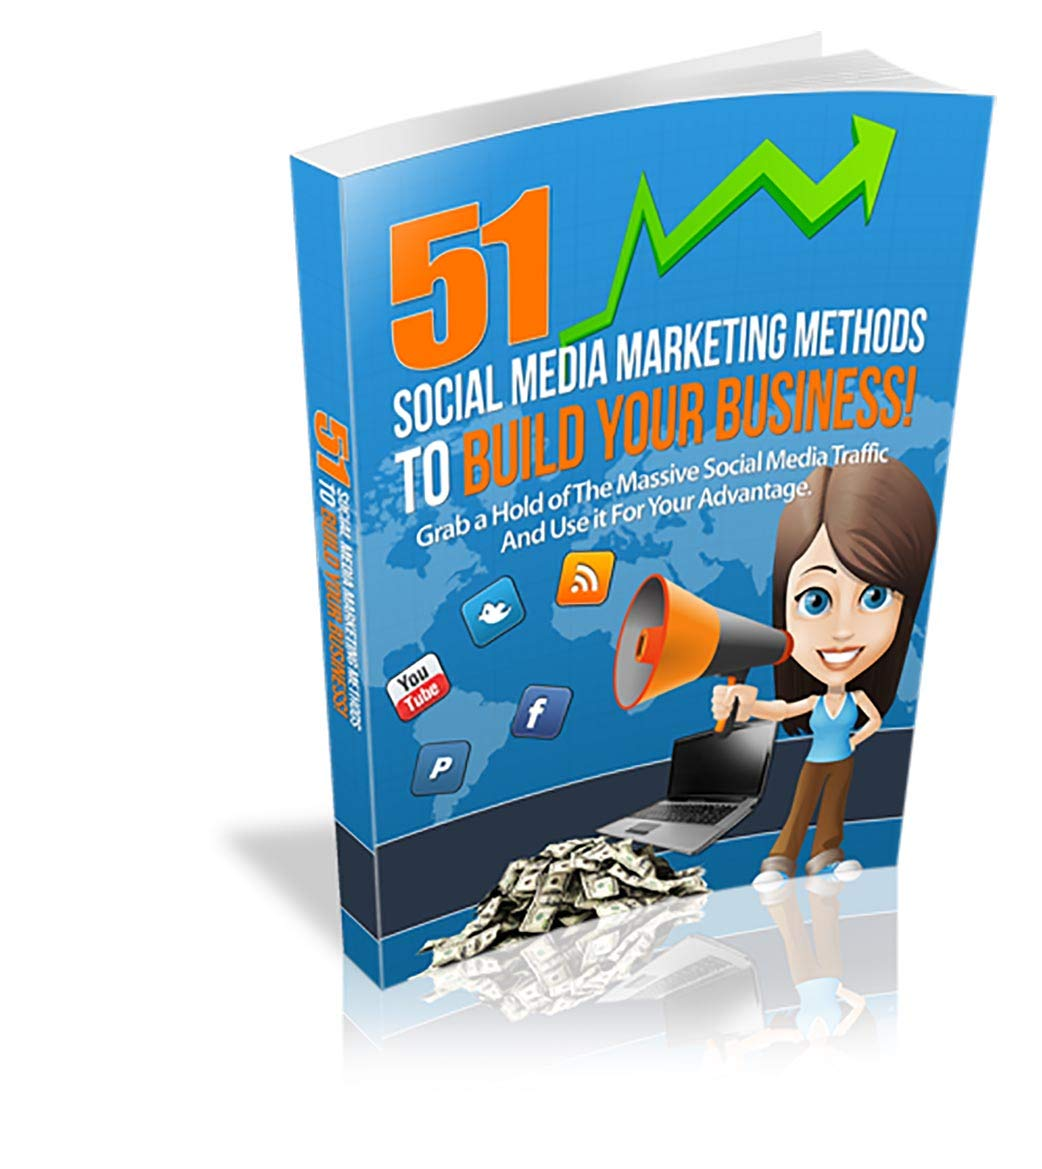 51 social media marketing methods: It's Time to Discover How Social Media Can Earn You Instant Profits